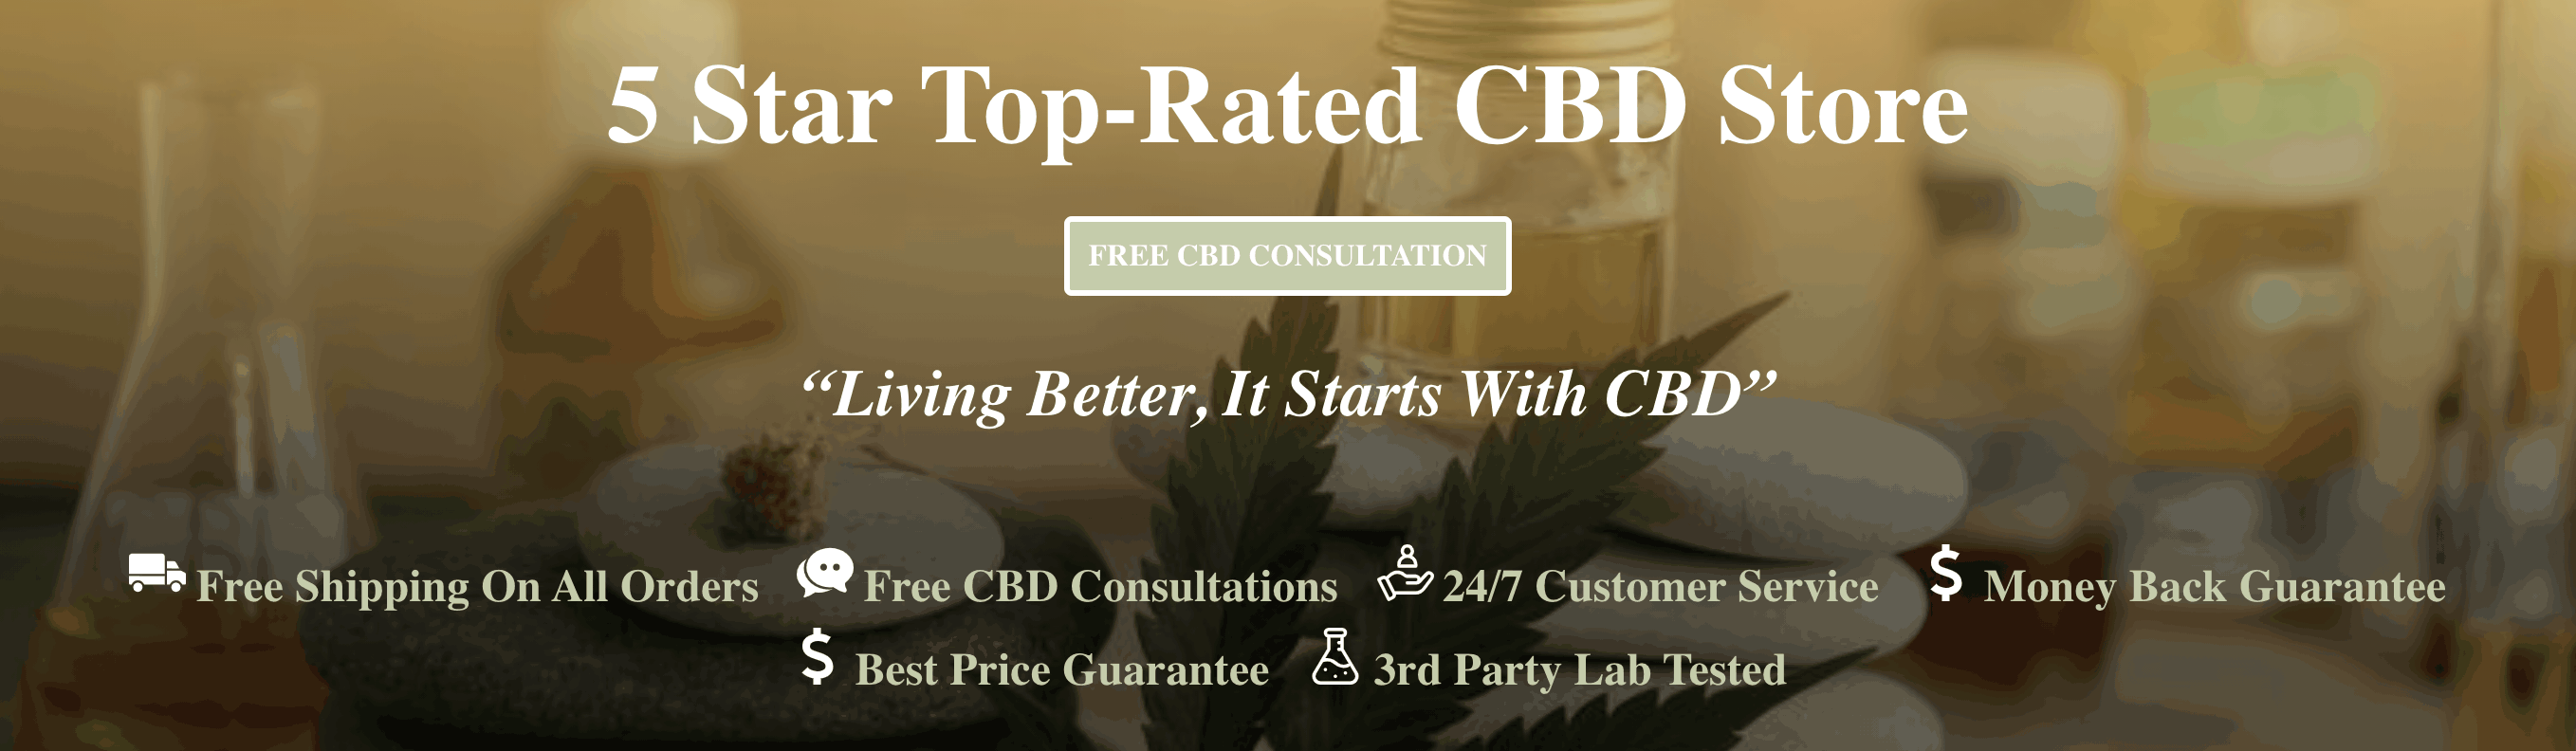 Get Mass Apothecary CBD Coupons HEre - 4 Star Rated